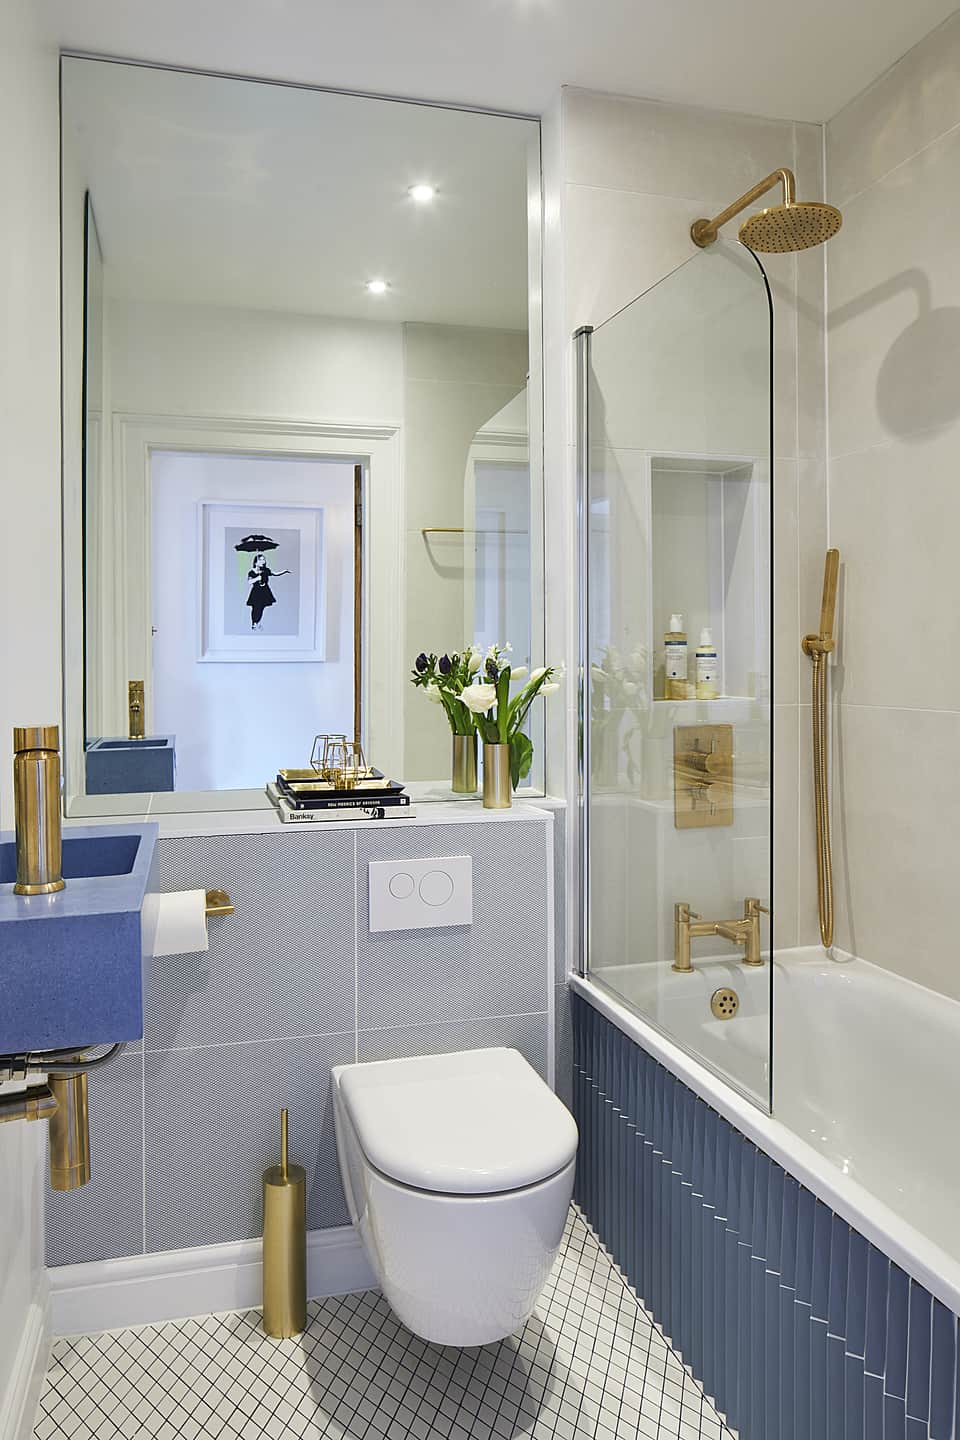 16 Best Small Bathroom Trends 2021 That Are Rule-Breaking